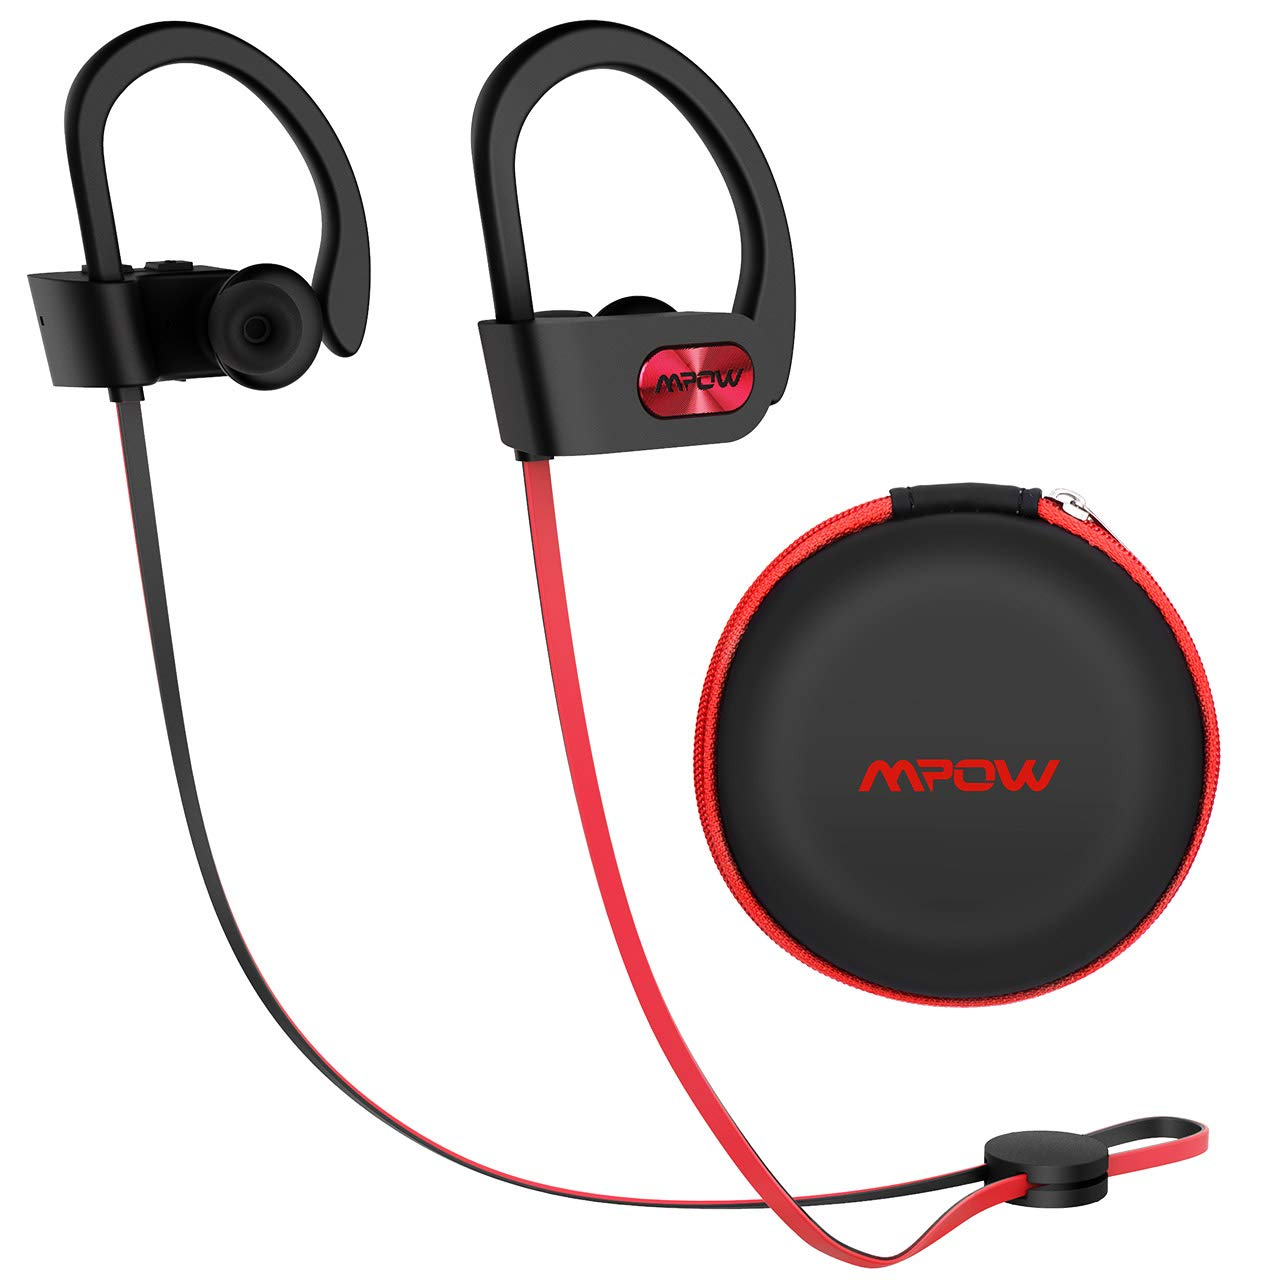 f552ec14524 Mpow Flame Upgraded Bluetooth Headphones with Case, IPX7 Waterproof Wireless  Earphones Sport W/Mic, 7-9 Hrs Playtime, in-Ear Wireless Earbuds W/Rich  Bass ...